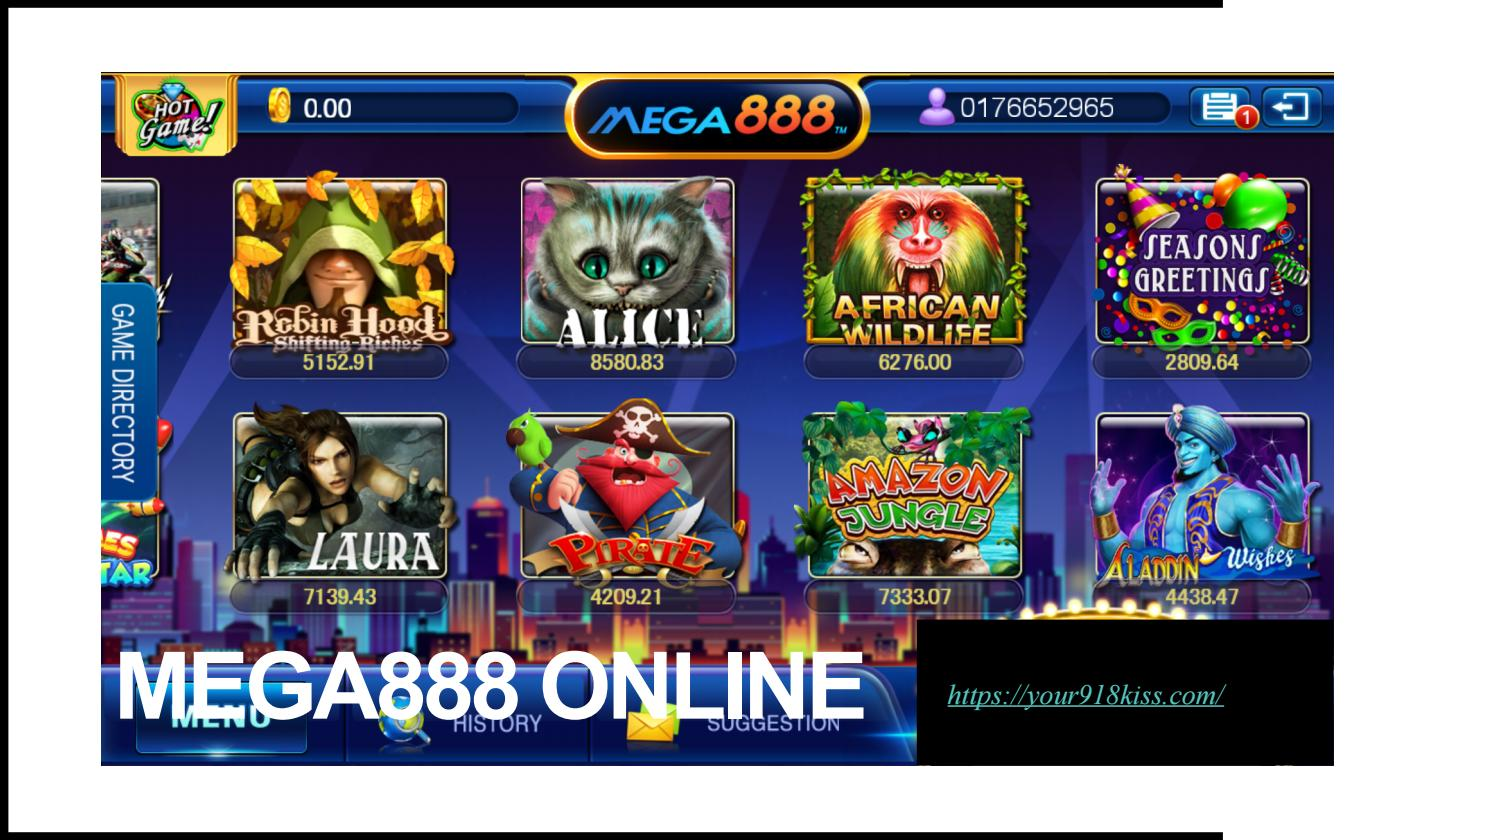 Aladdin Wishes game review on mega888 by Livemobile99